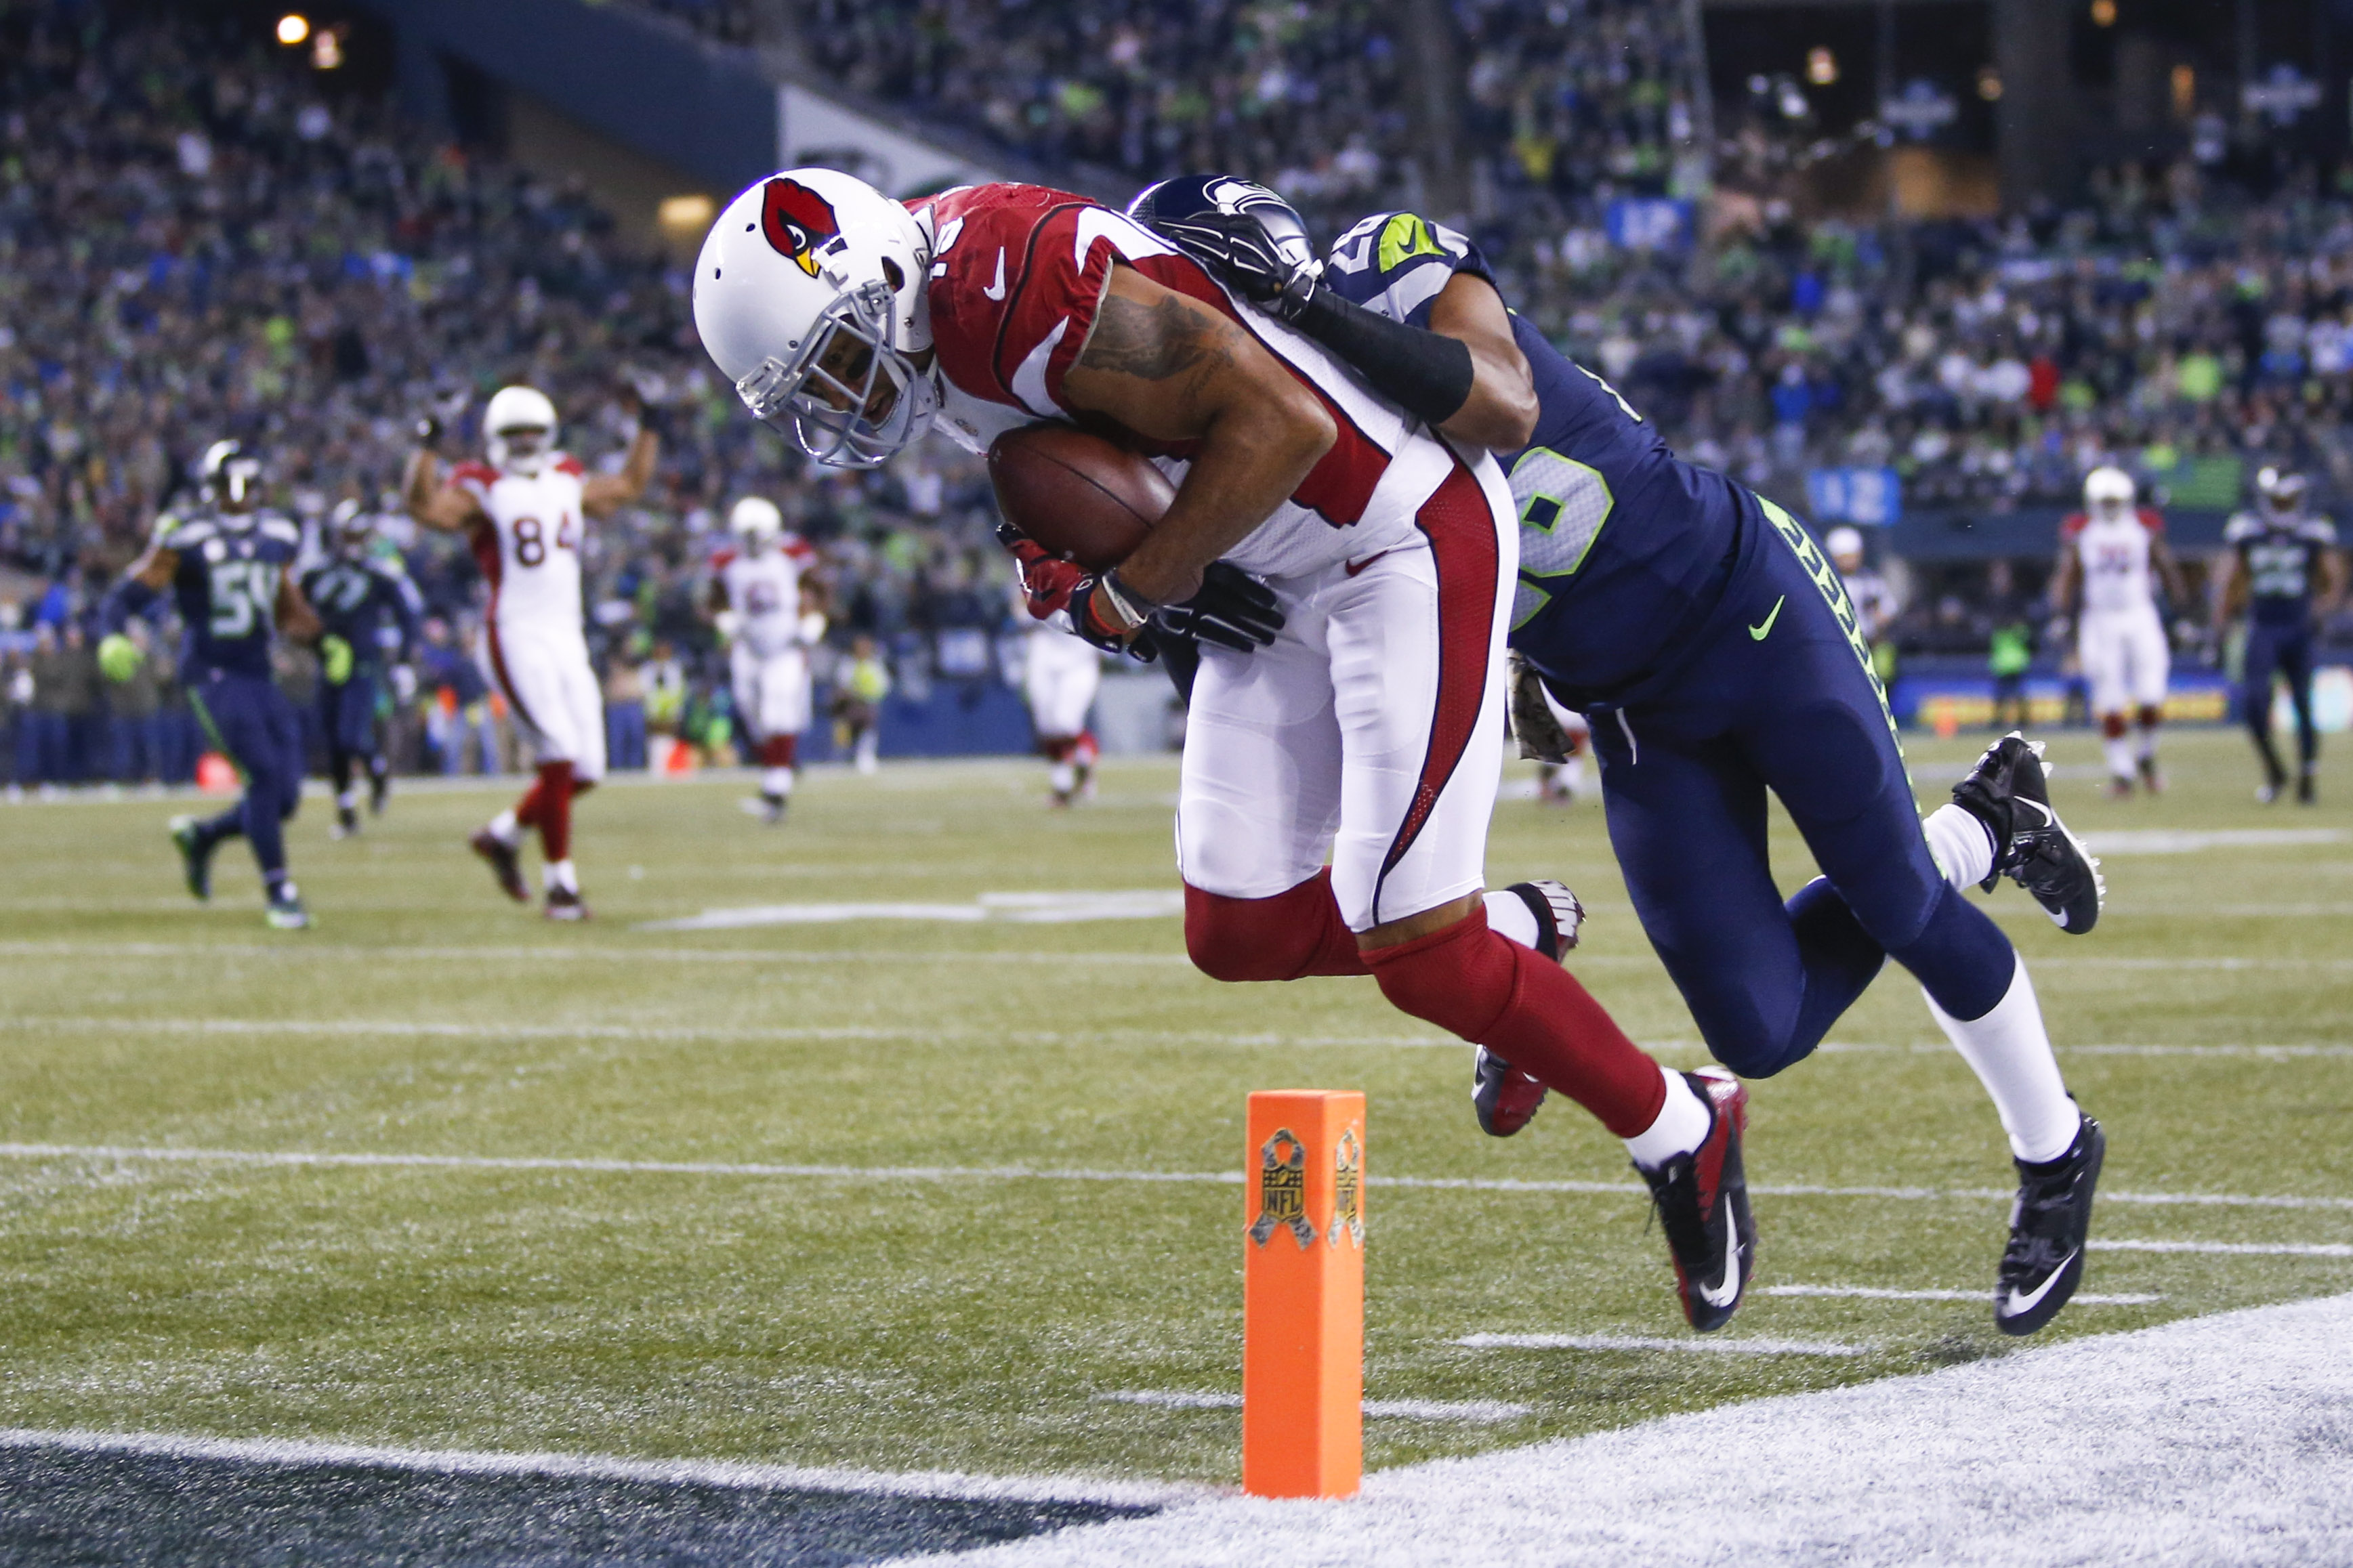 Michael Floyd is 'day-to-day' per report, fantasy status unclear